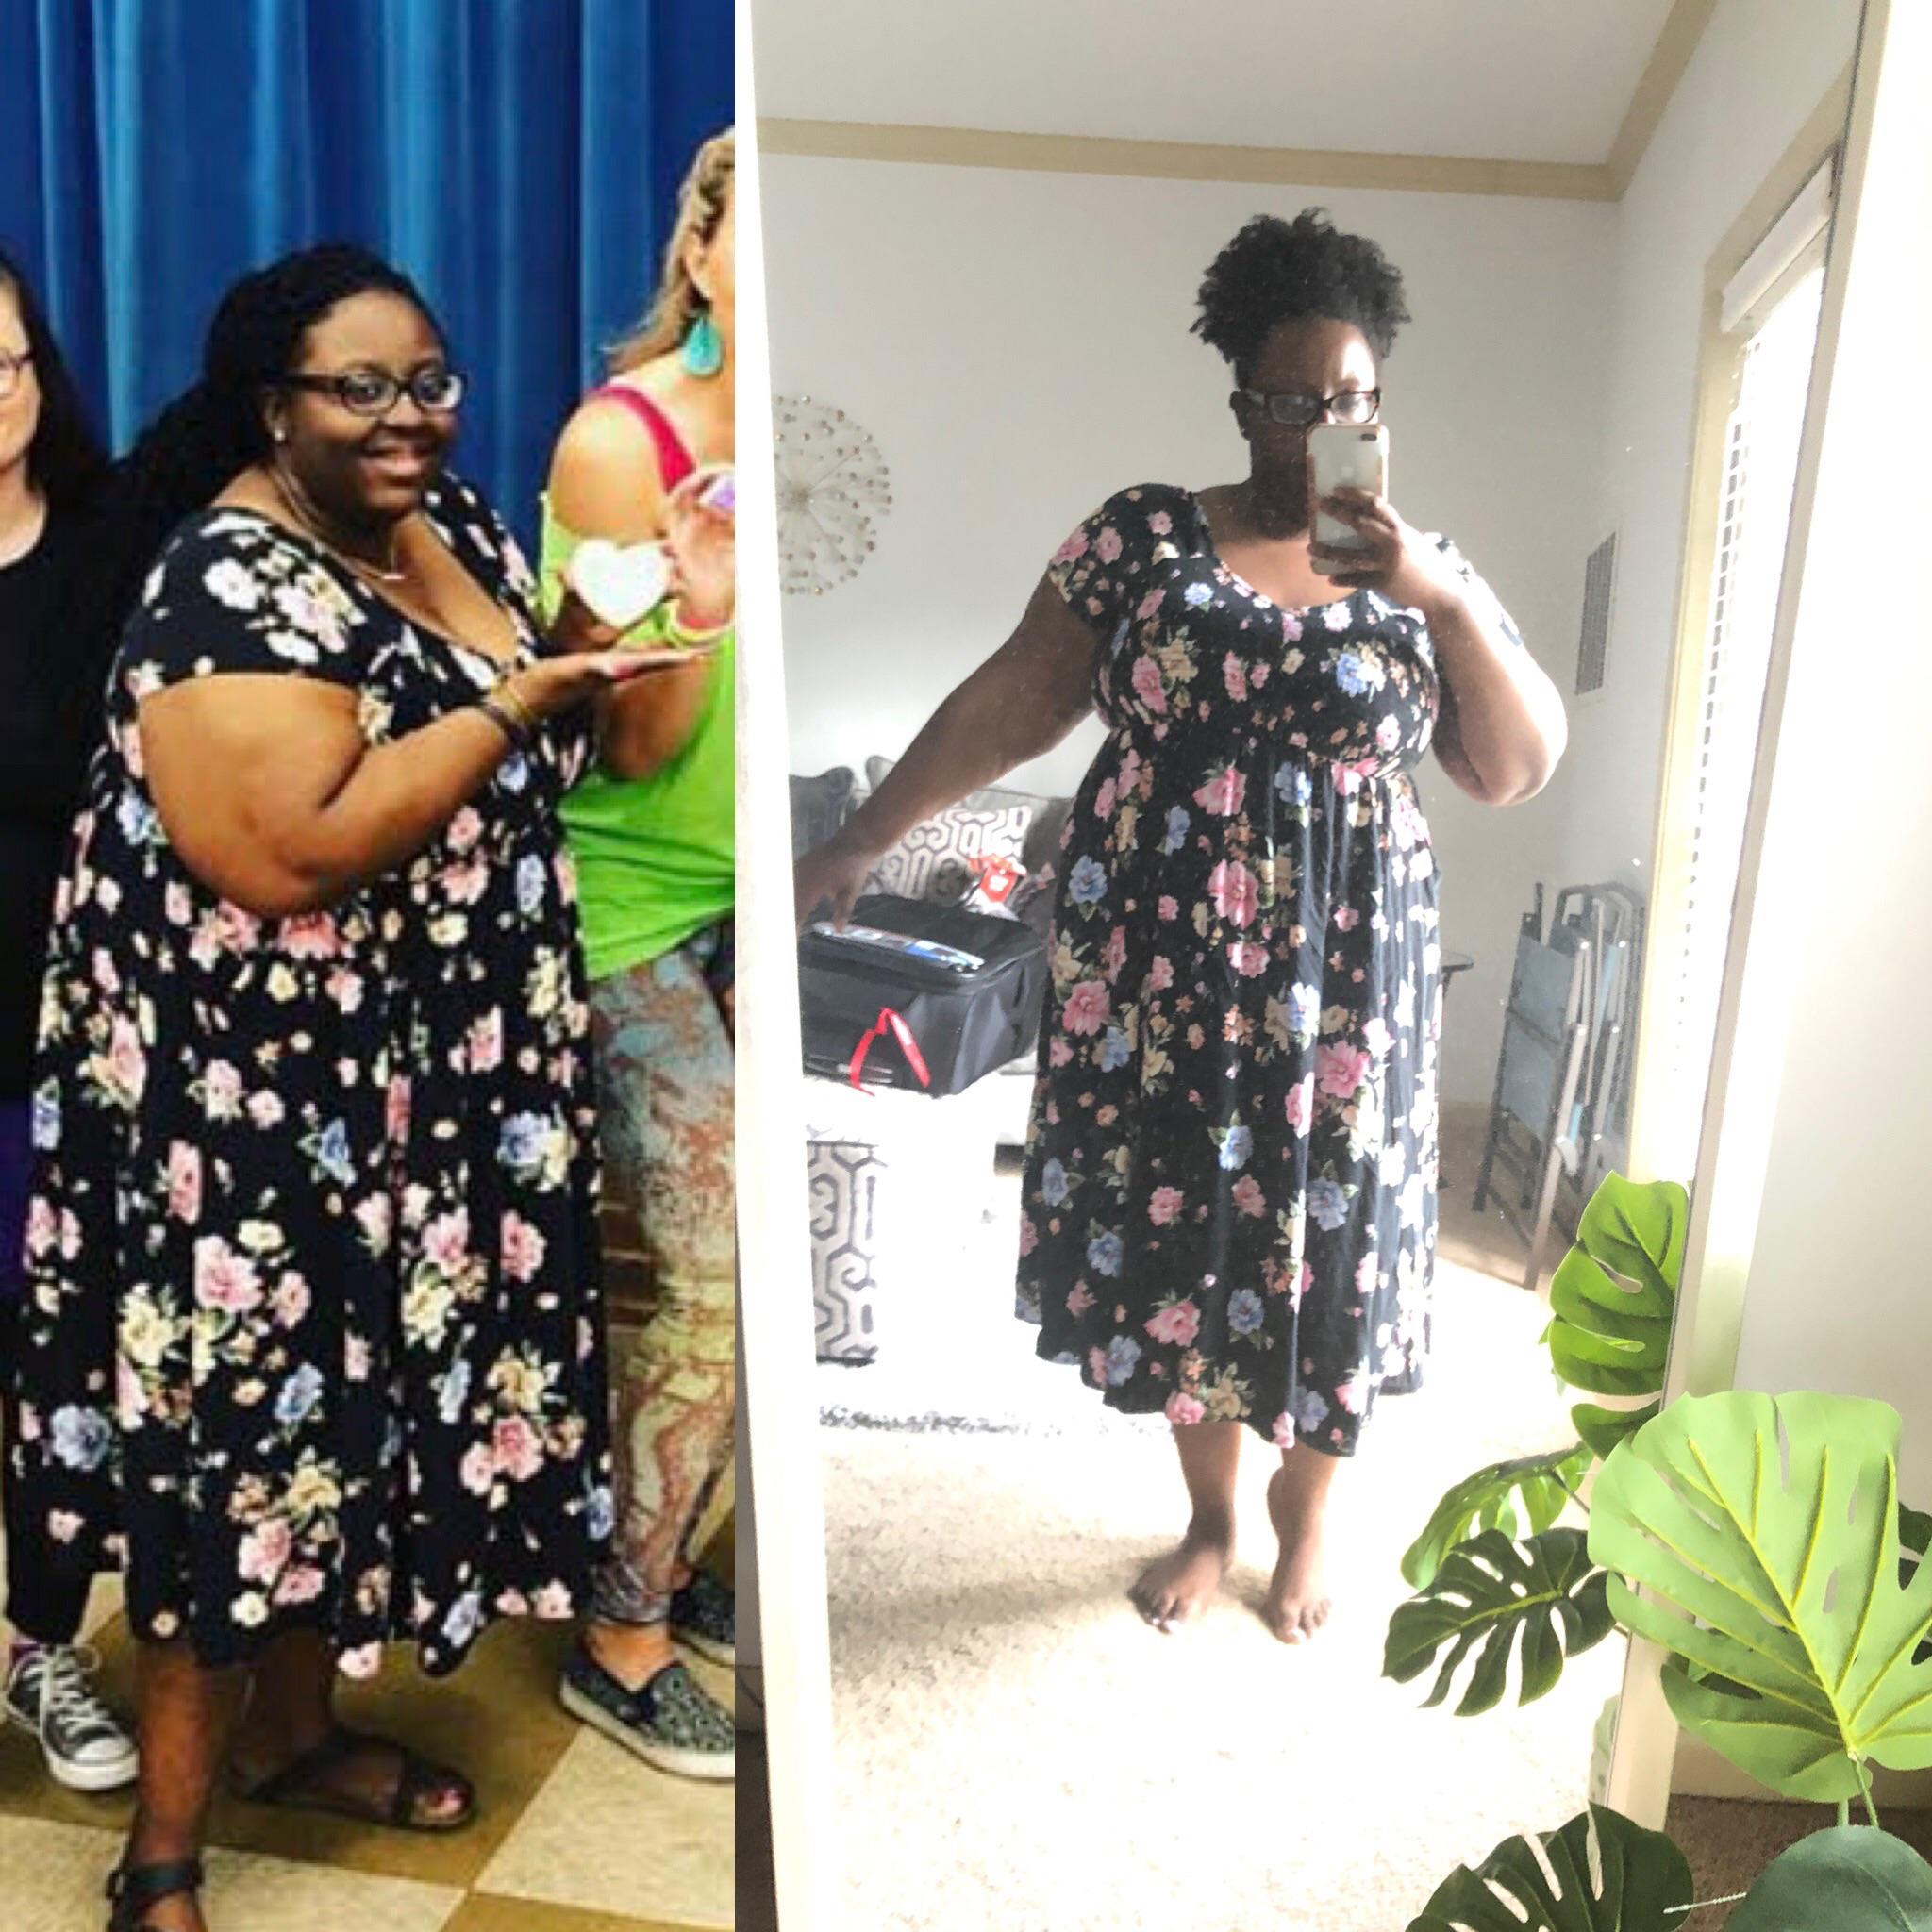 Before and After 44 lbs Fat Loss 5 foot 4 Female 268 lbs to 224 lbs